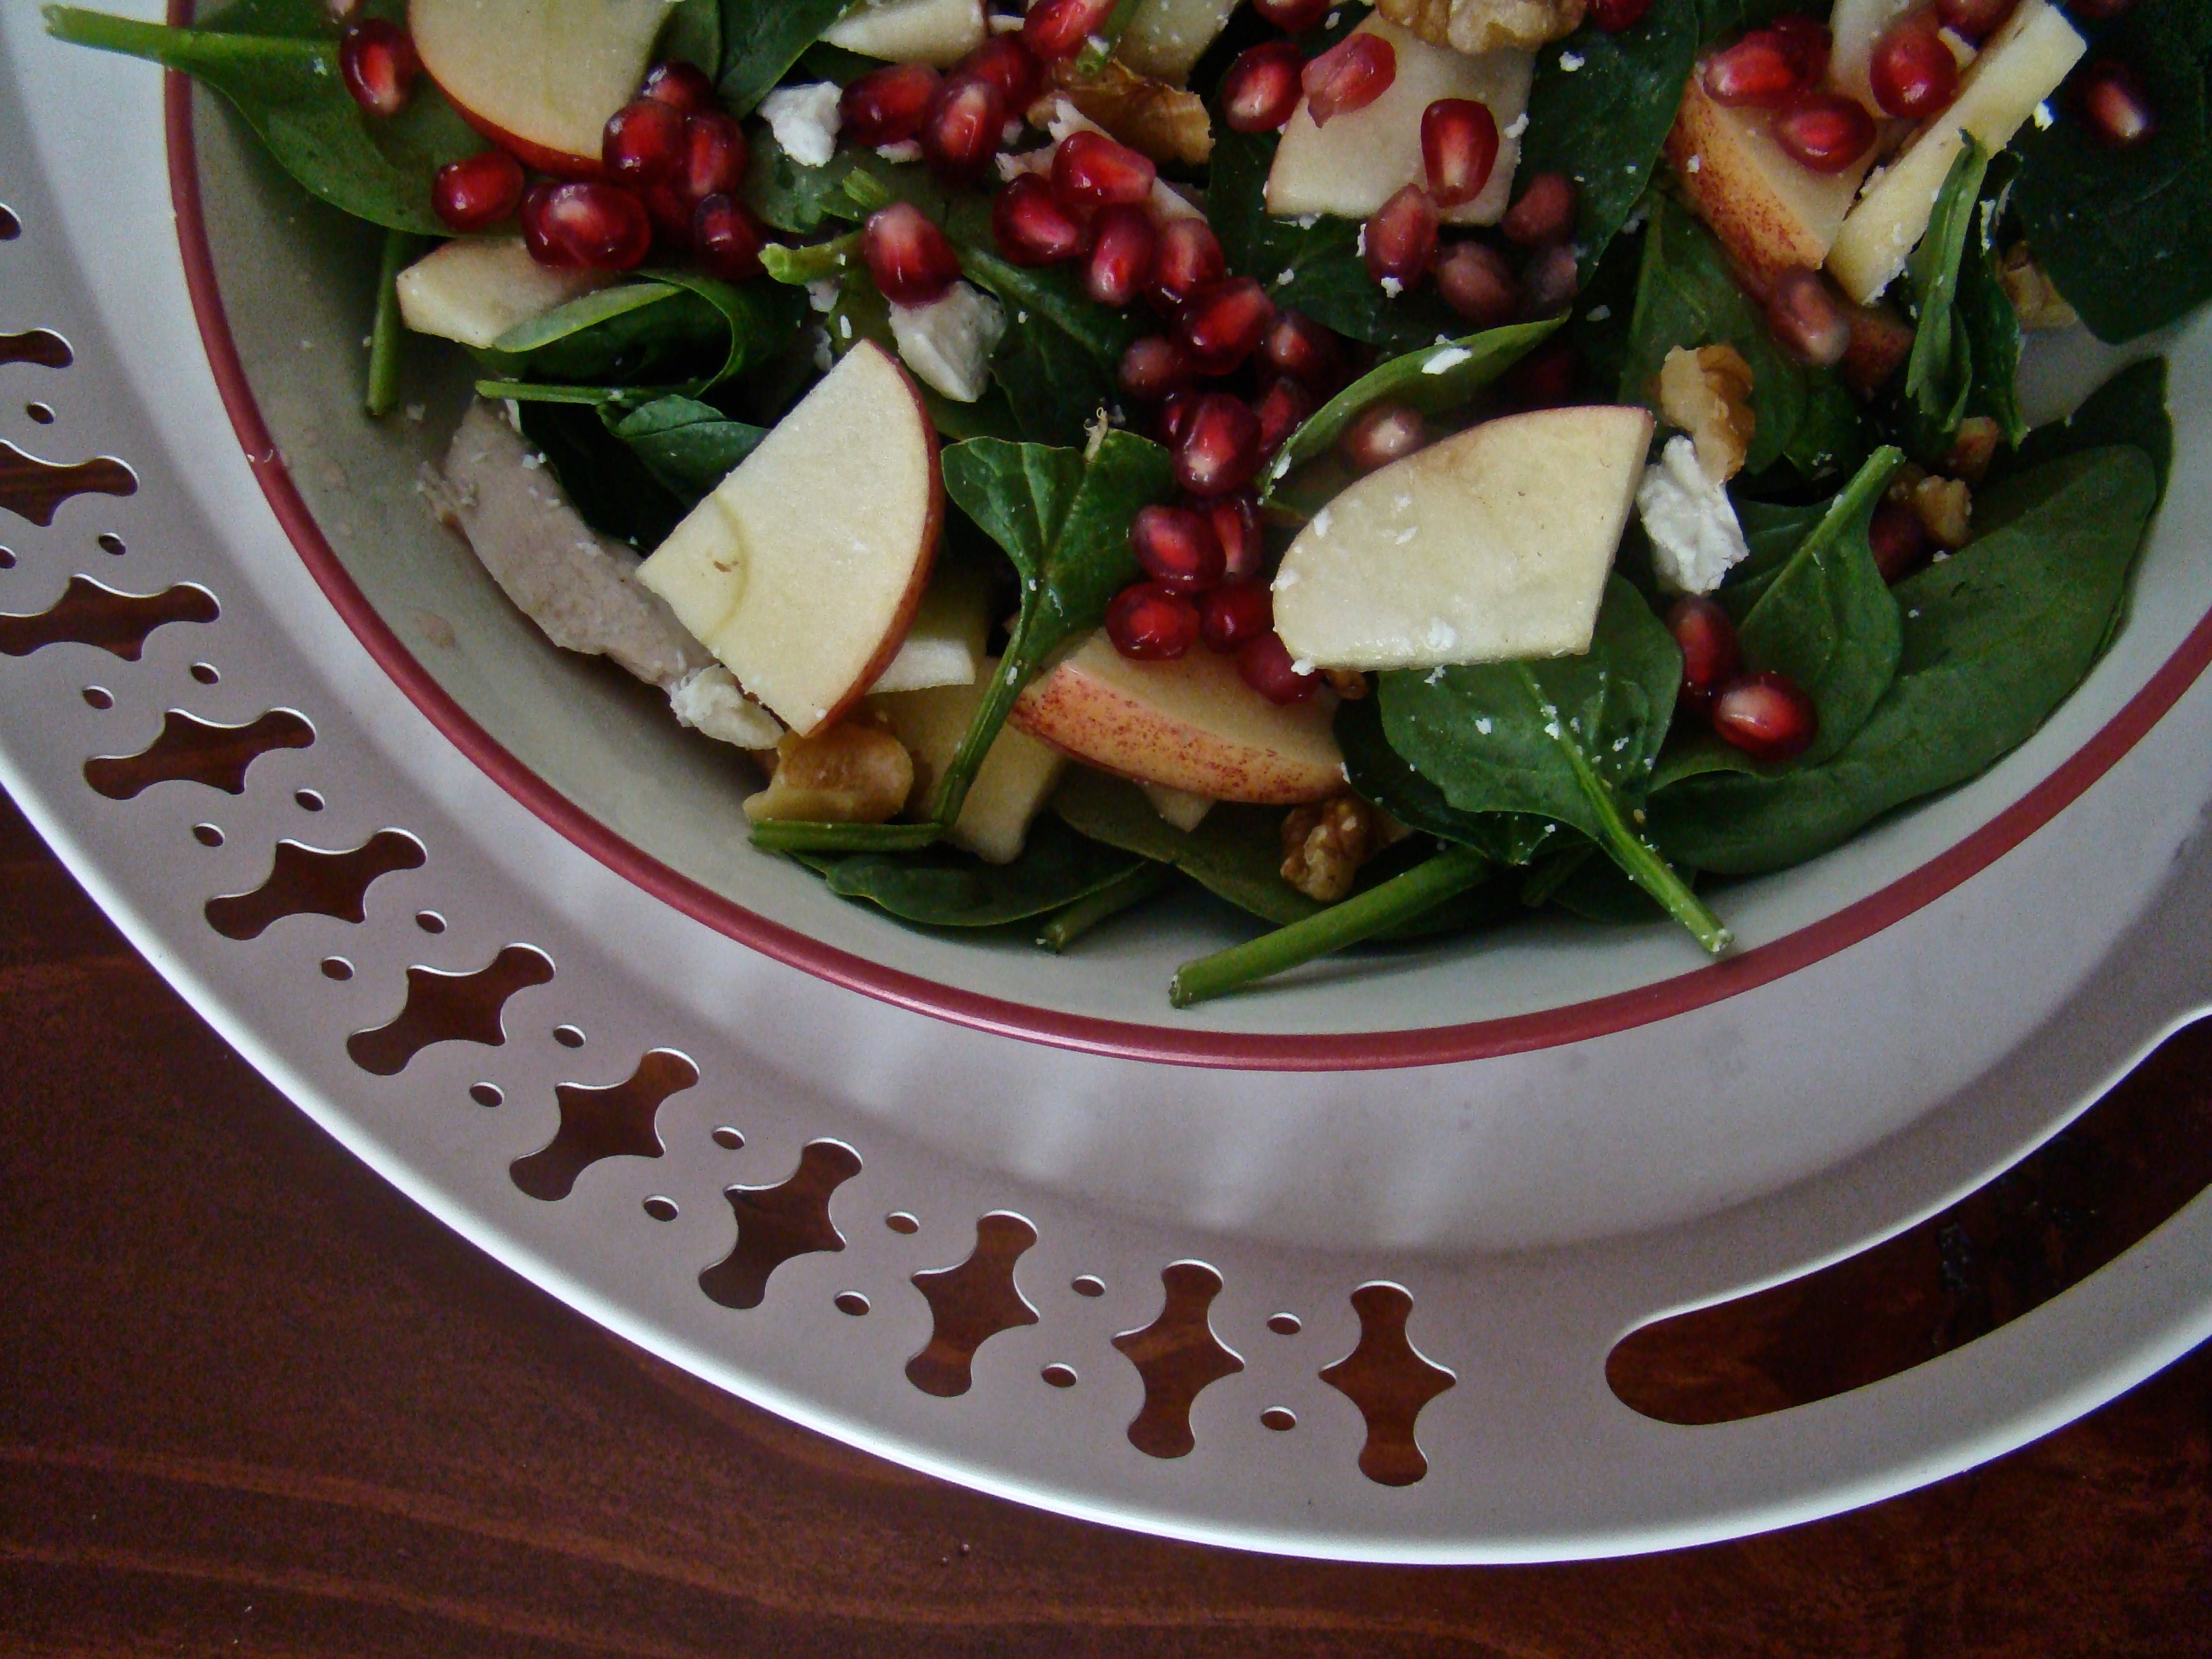 Pomegranate Salad with Cinnamon Maple Vinaigrette